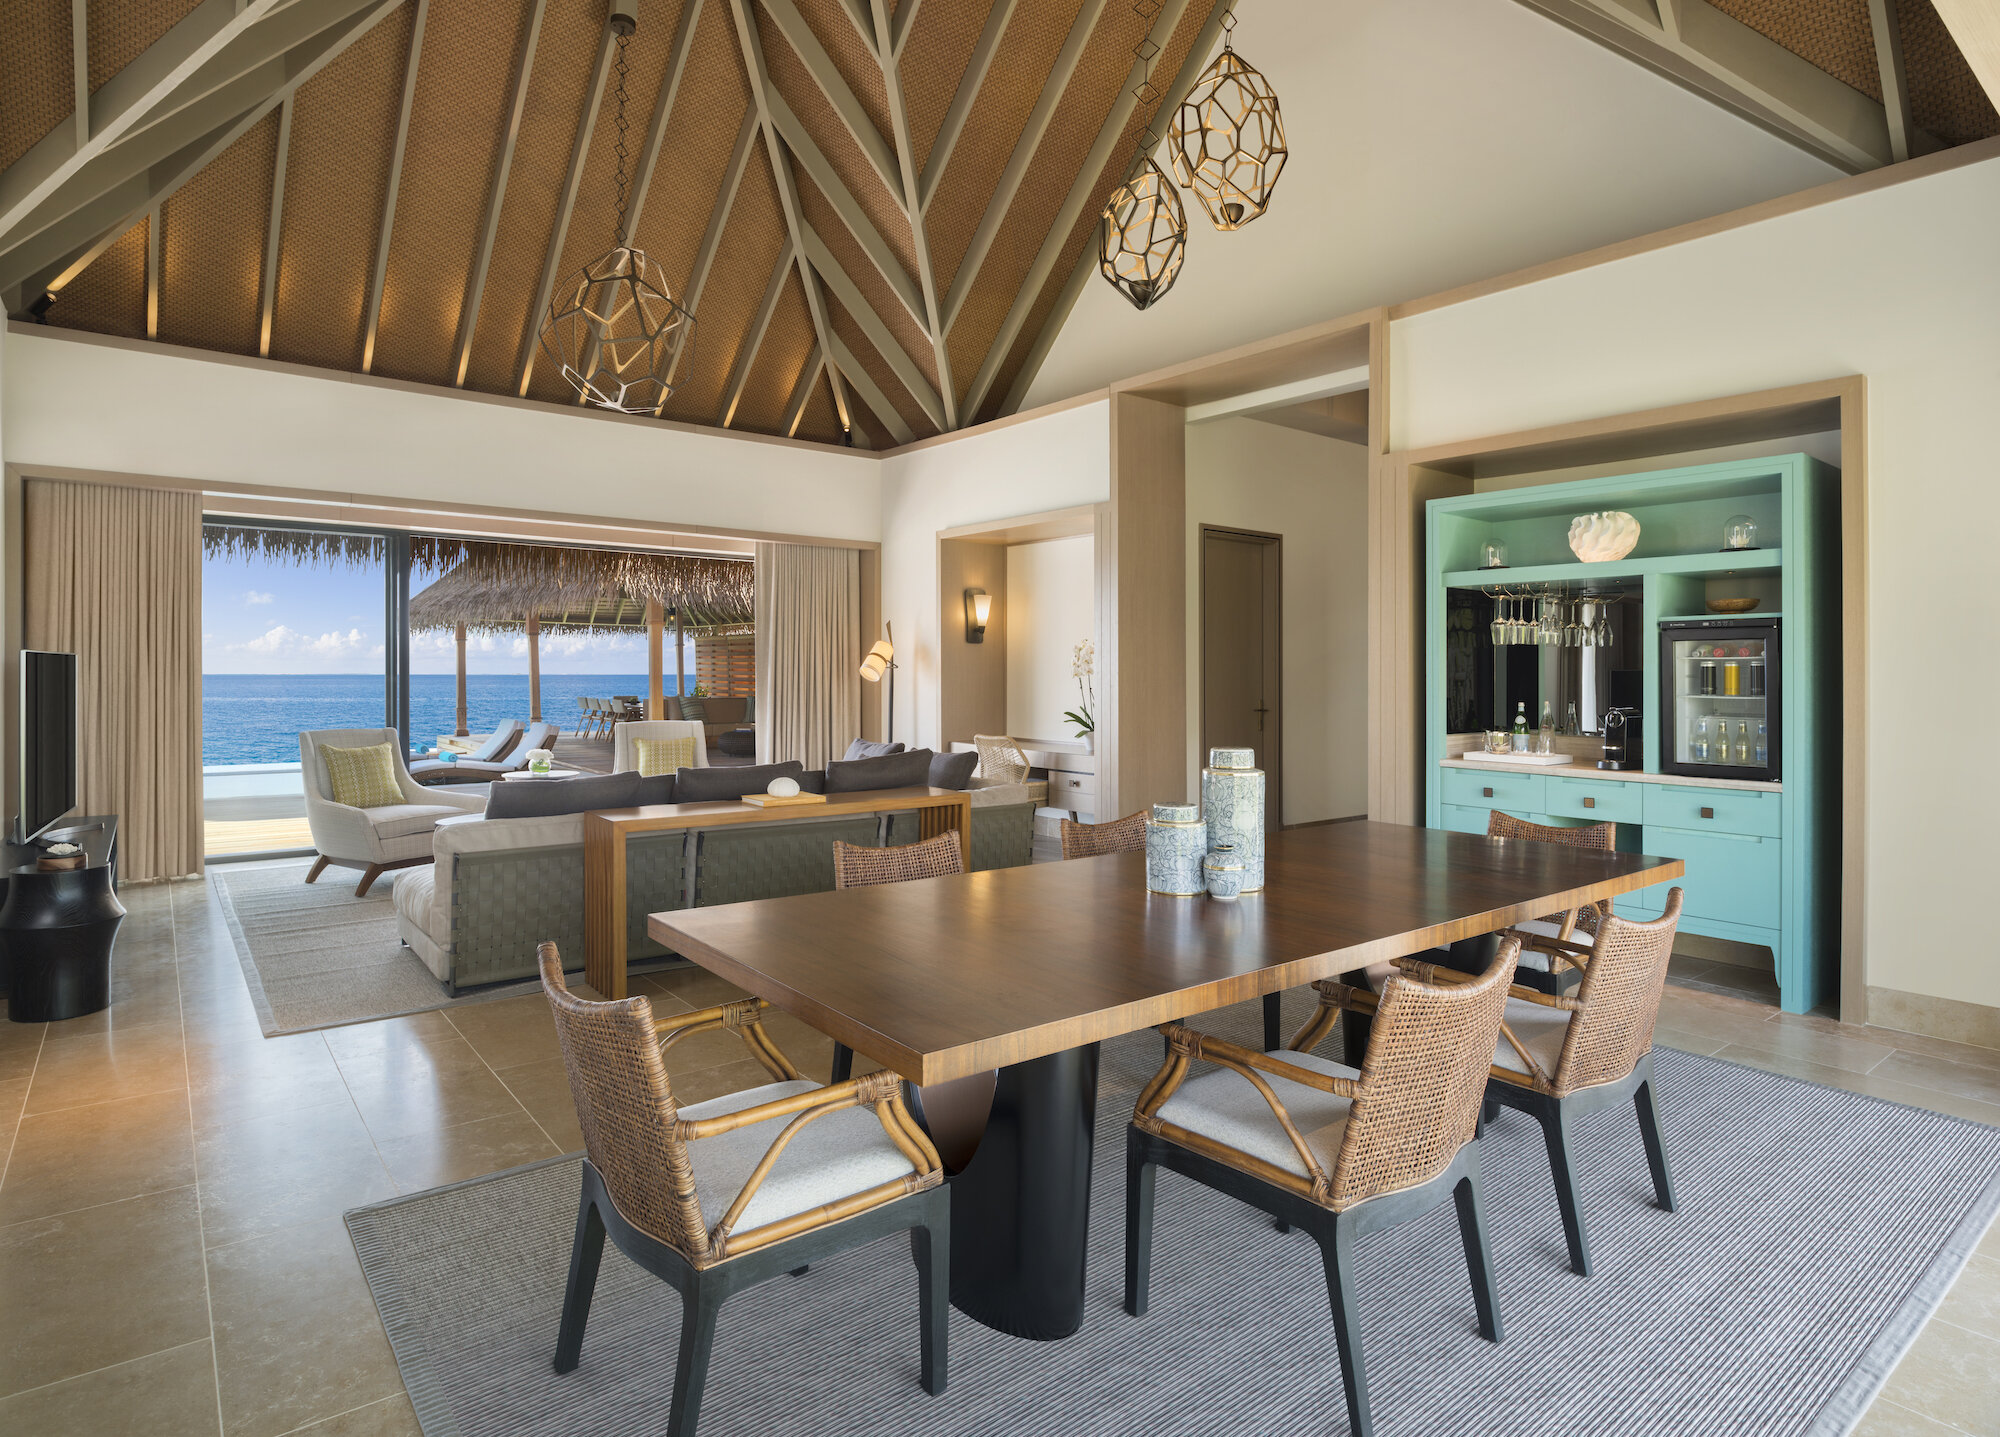 Two_and_Three_Bedroom_Reef_and_Overwater_Villa_Living_and_Dining_Area copy.jpg